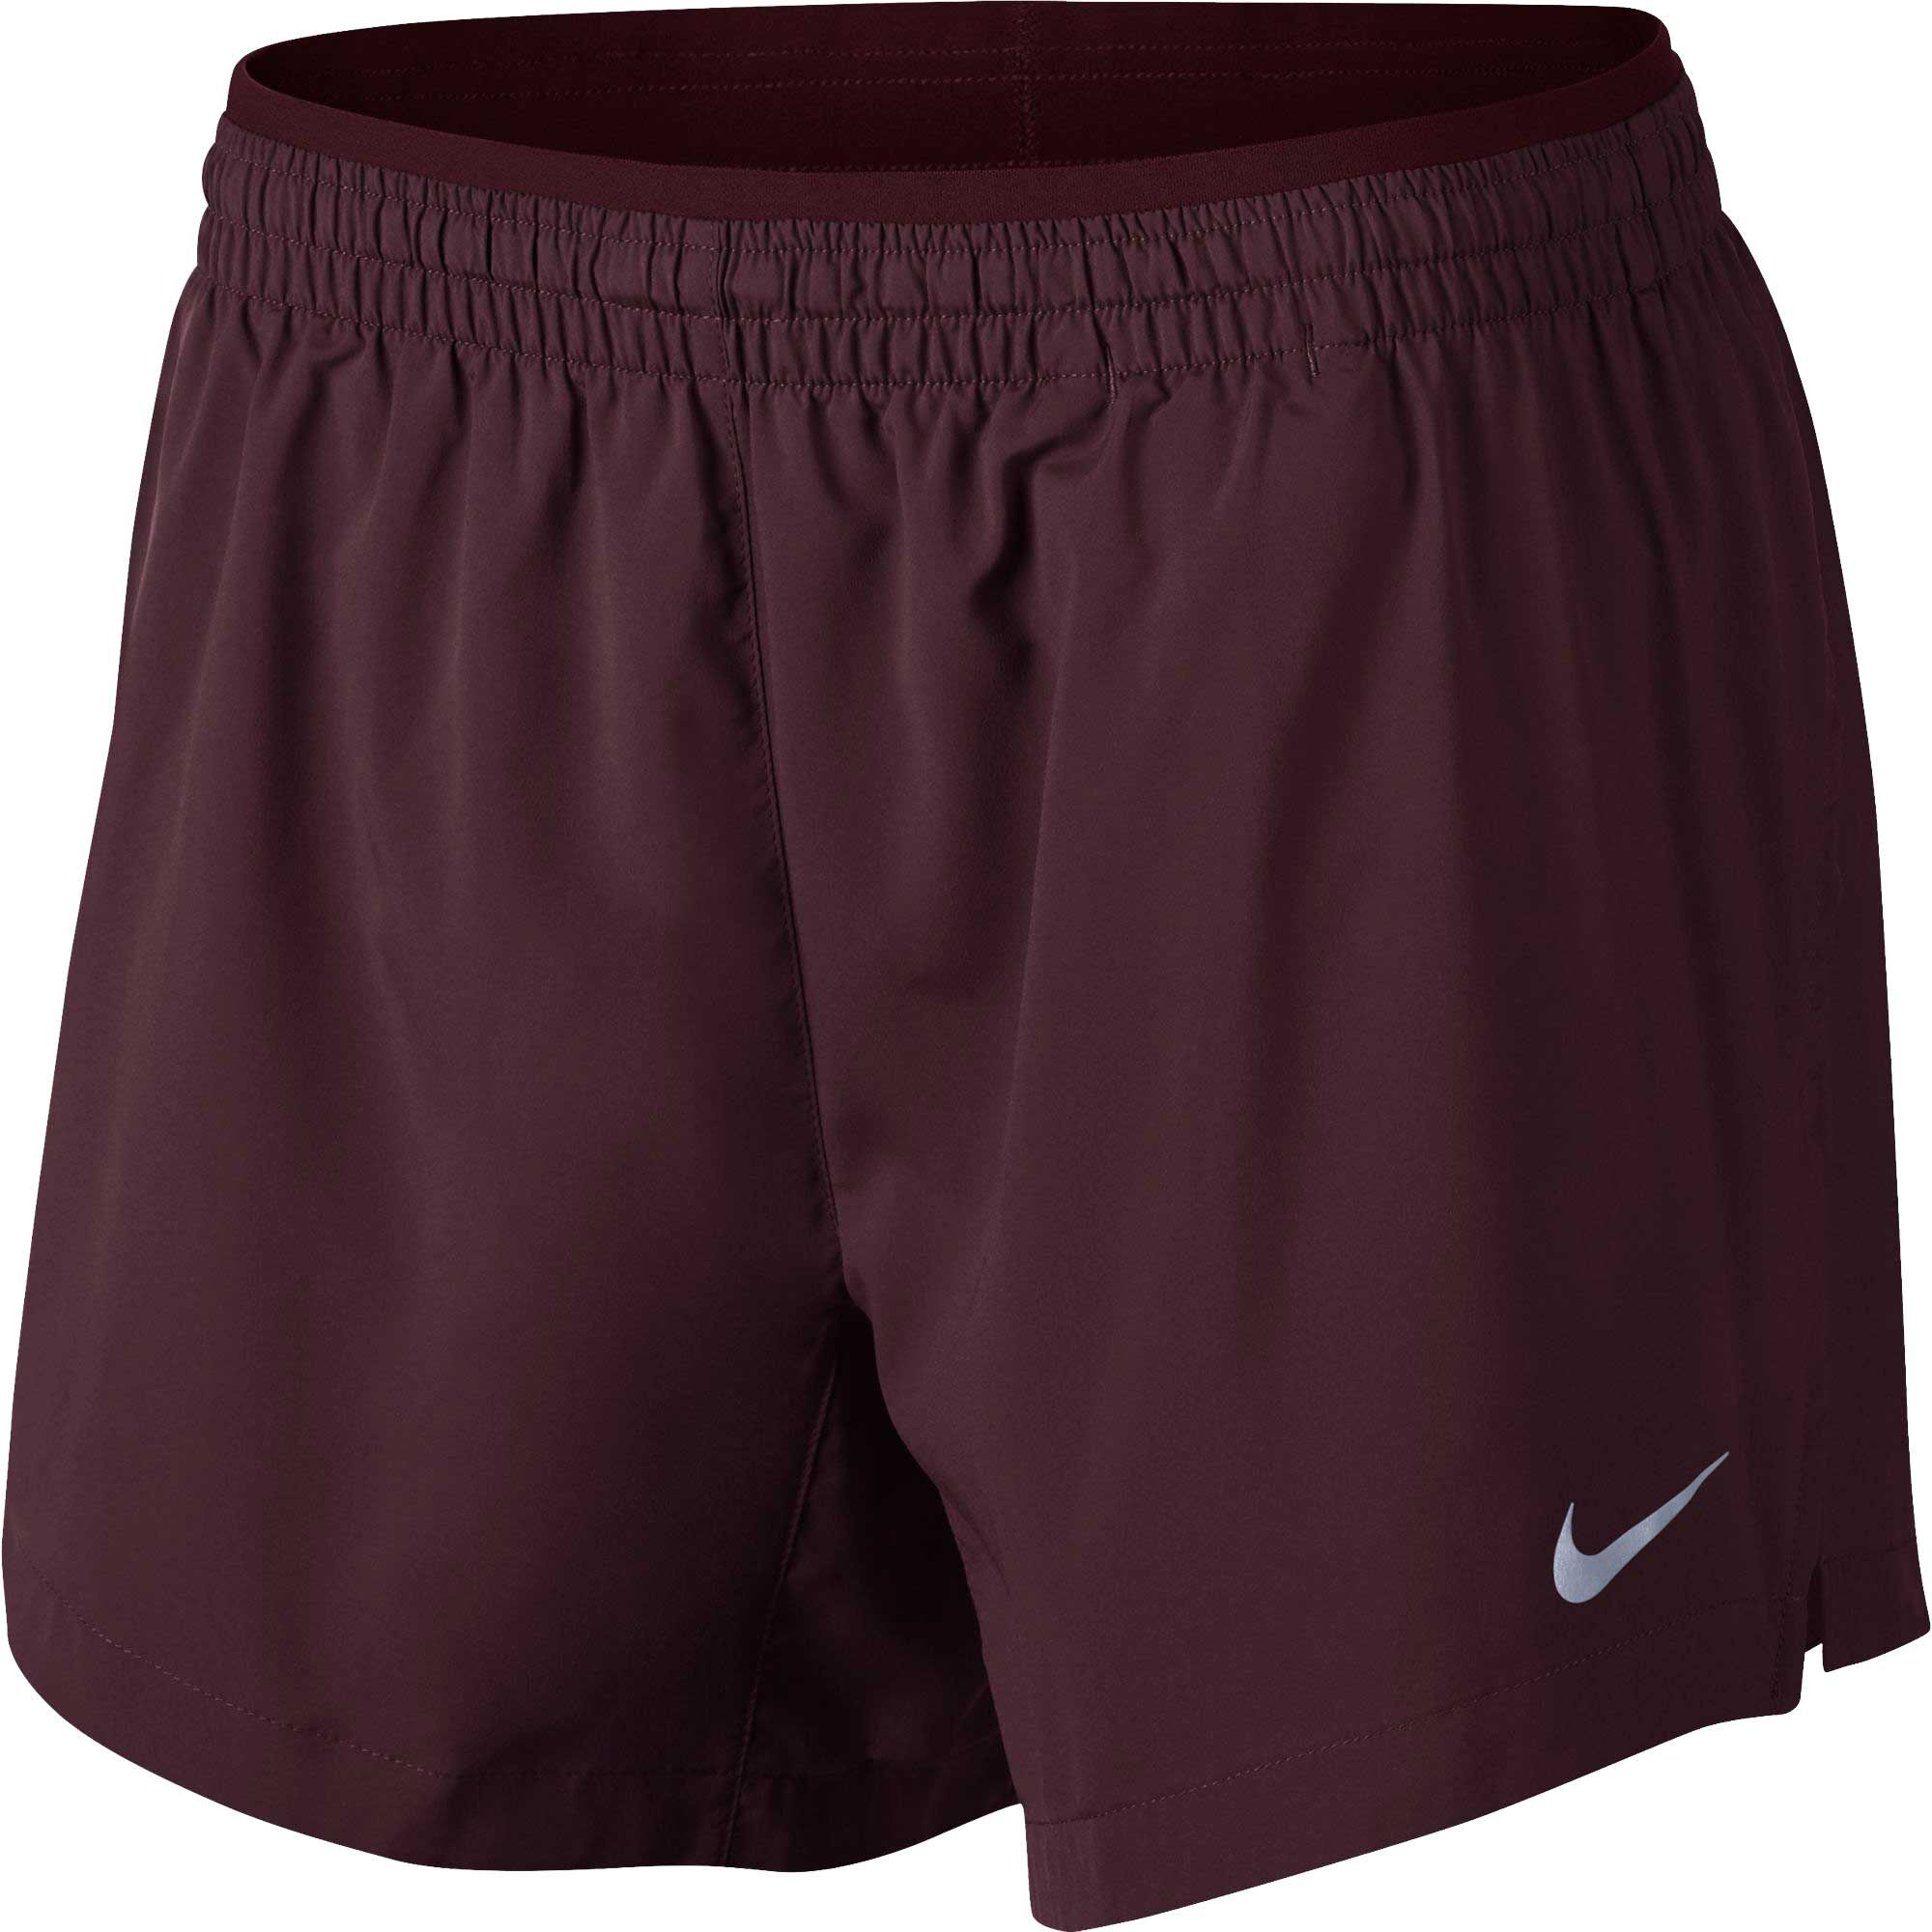 Nike Women's Elevate 5'' Running Shorts by Nike